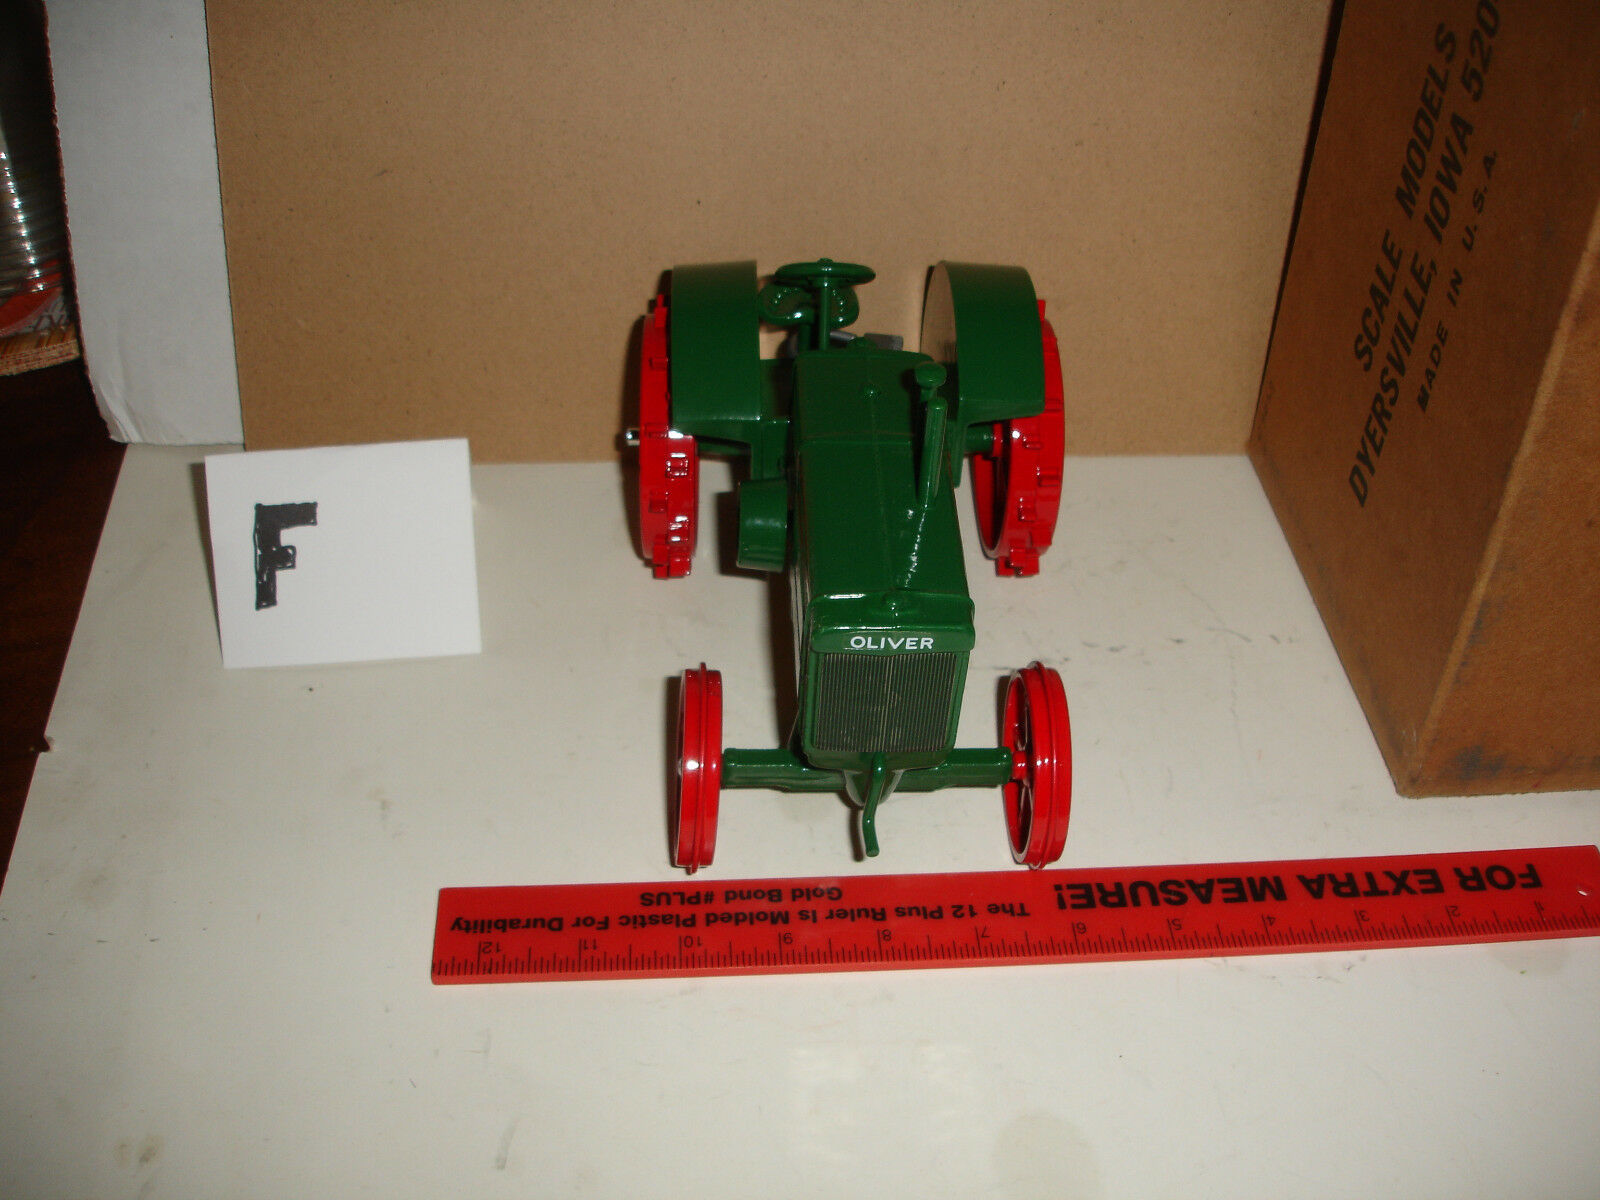 1 16 oliver 90 toy tractor